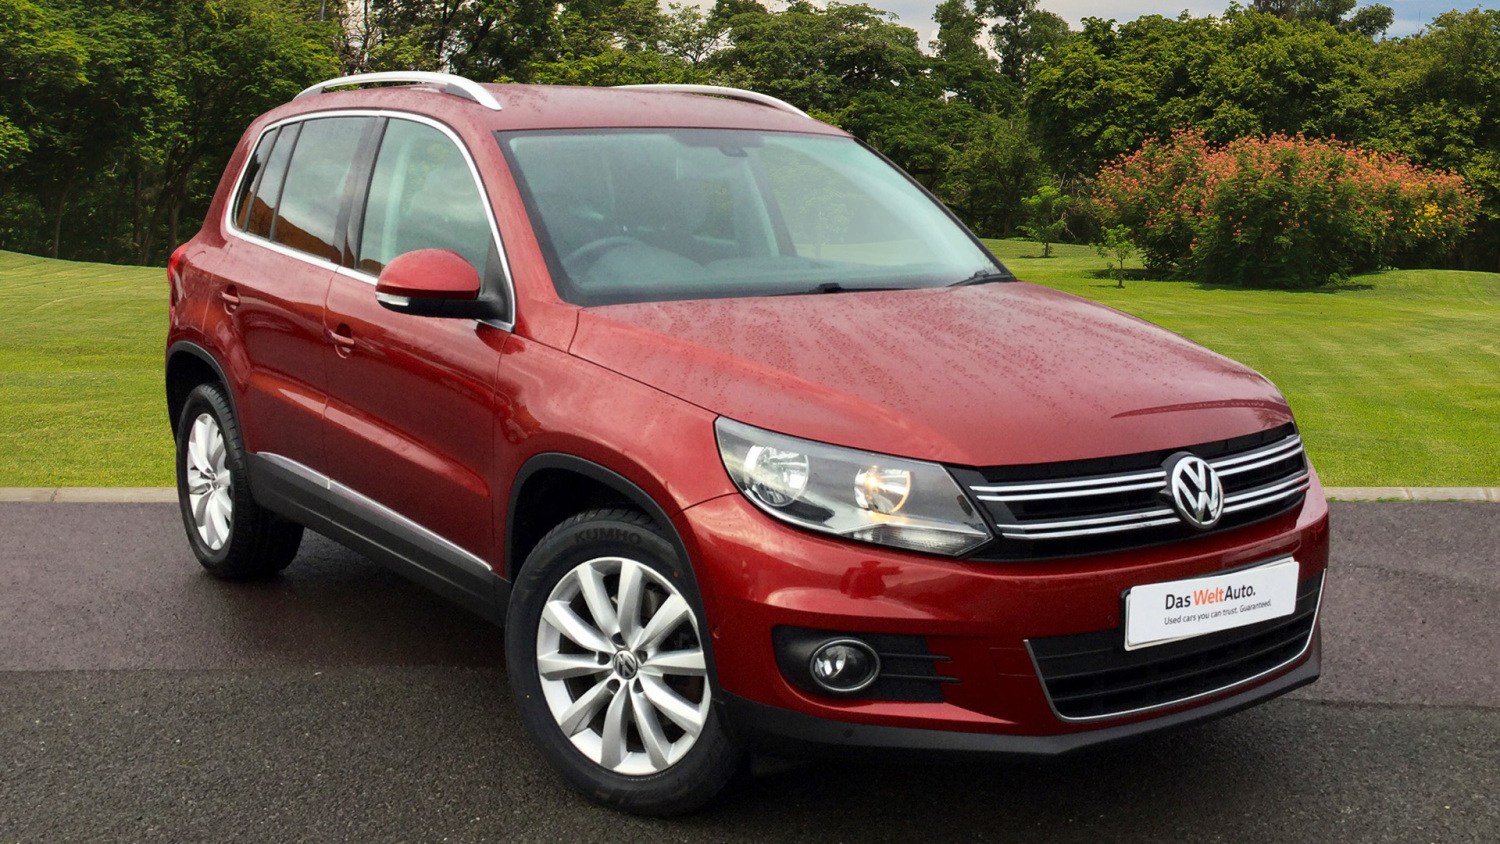 used volkswagen tiguan 2 0 tdi bluemotion tech match 5dr 2wd diesel estate for sale bristol. Black Bedroom Furniture Sets. Home Design Ideas